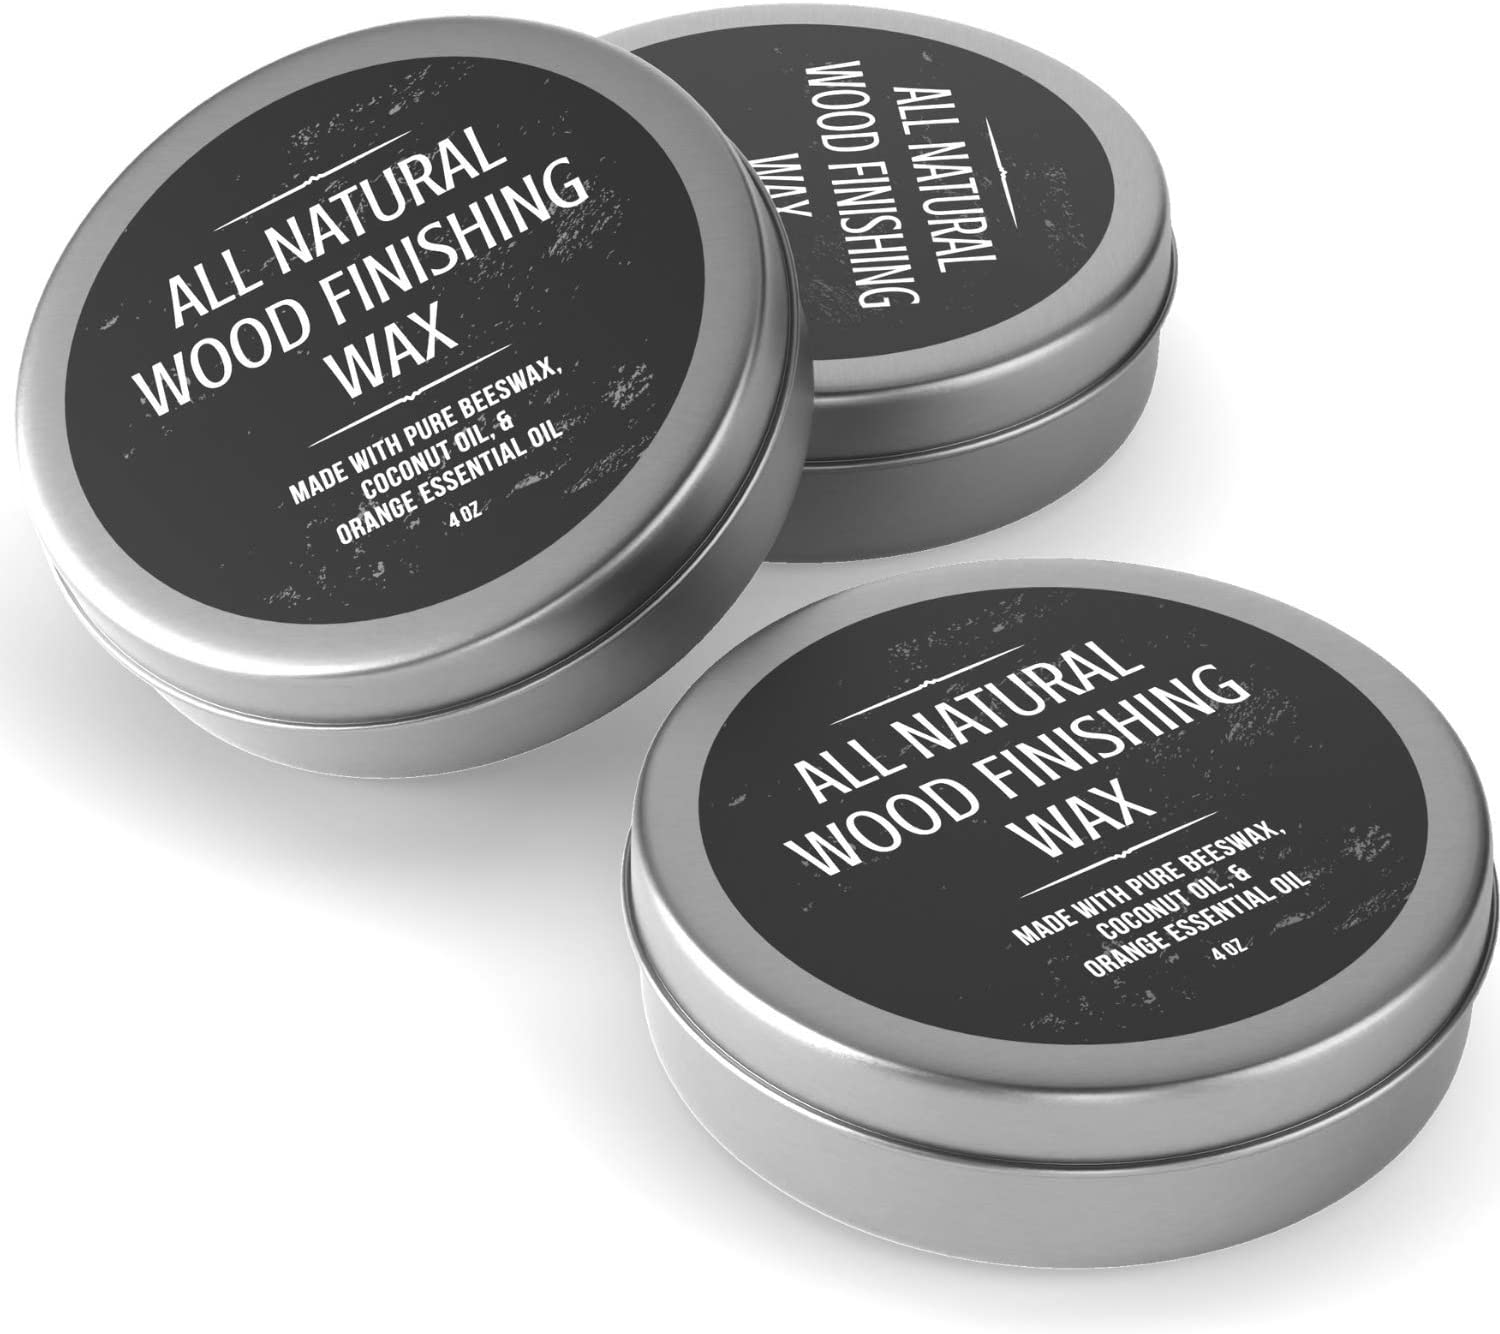 All Natural Wood Seasoning Wax Tin by Virginia Boys Kitchens - 4 Ounce Coconut Oil and Beeswax Food Safe Sealer for Cutting Board, Bowl and Houseware… (3)